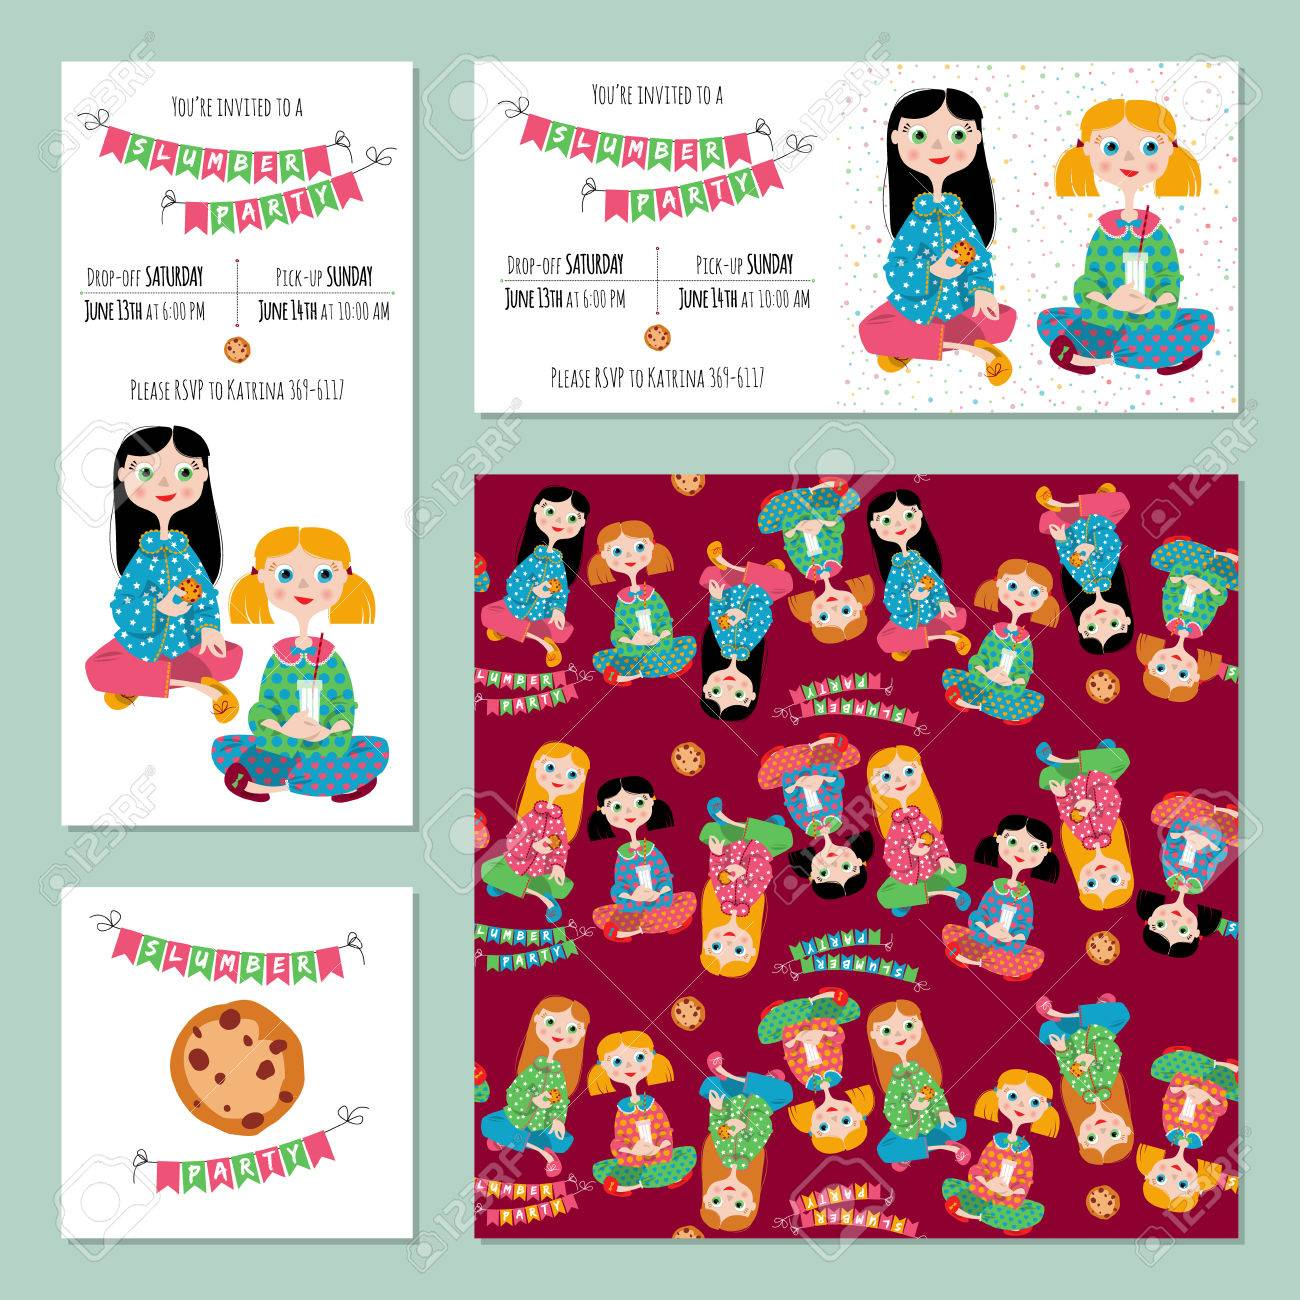 5 Invitation Cards For Pajama Party. Template. Royalty Free Cliparts ...